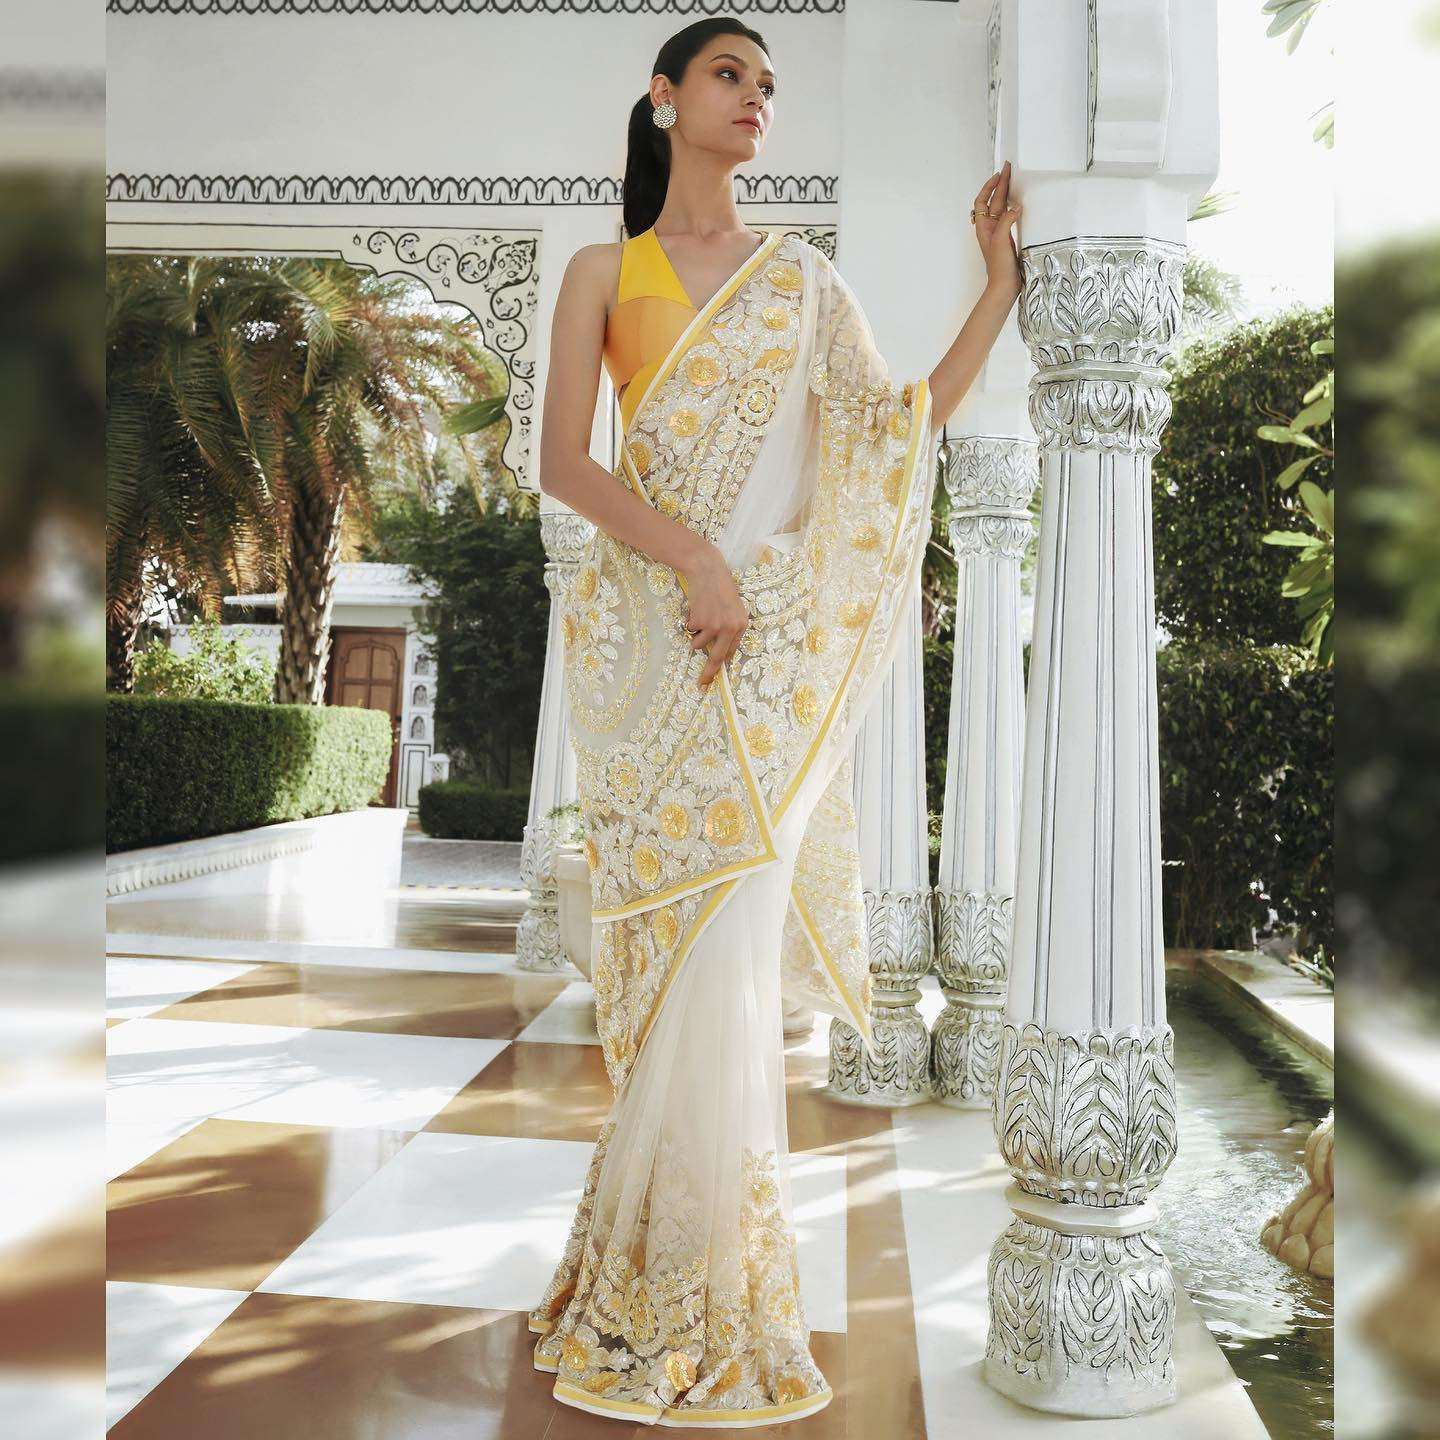 Confiding sweet sonnets of spring sequins and all hues sublime a sparkling addition to our repertoire in Kashmiri craft intertwine!